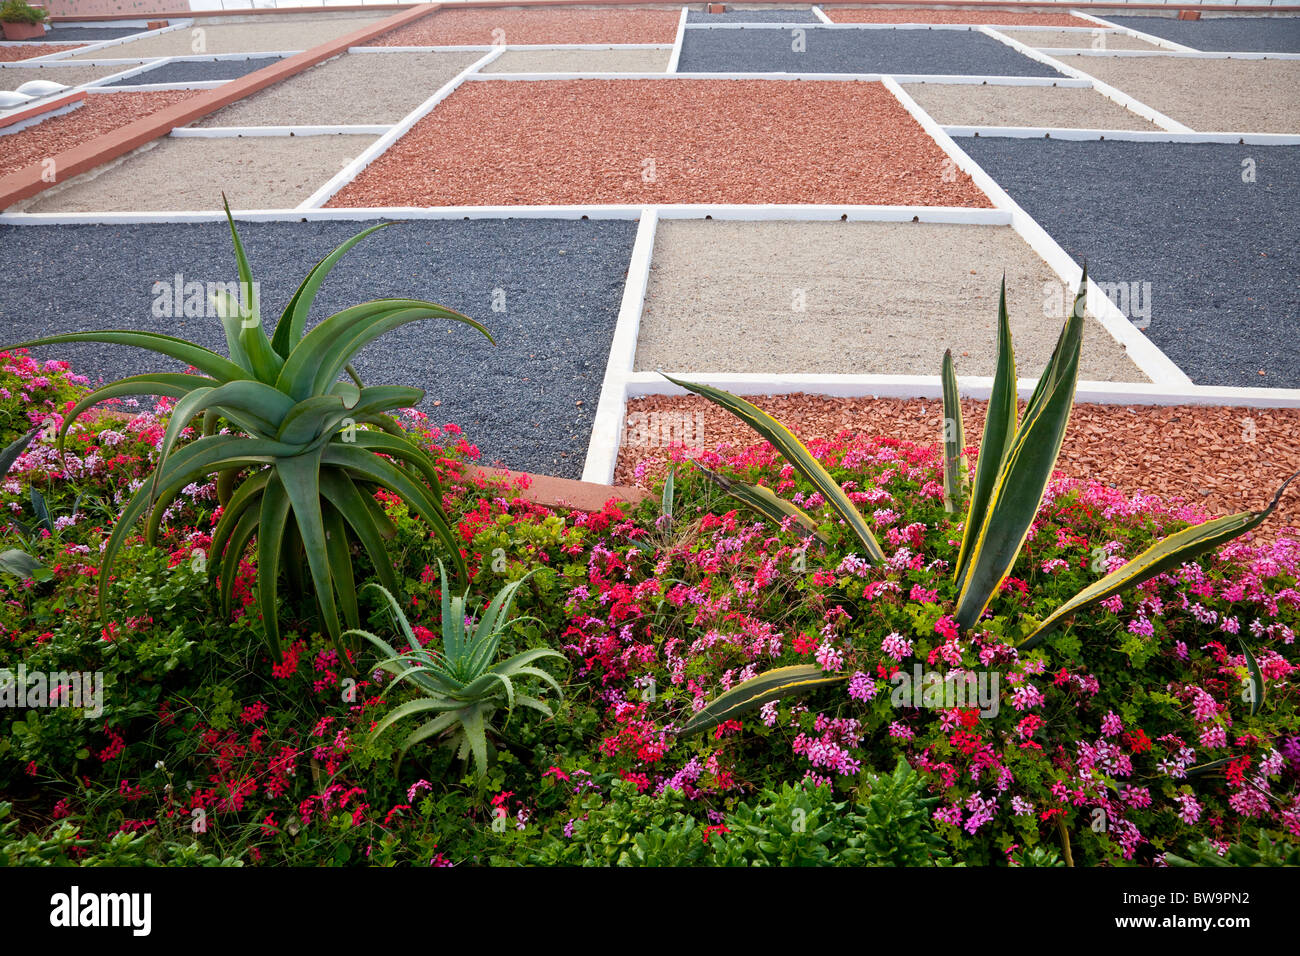 Stock Photo   Tropical Vegetation And Flowers With A Gravel Roof Pattern On  The Corniche In Casablanca, Morocco